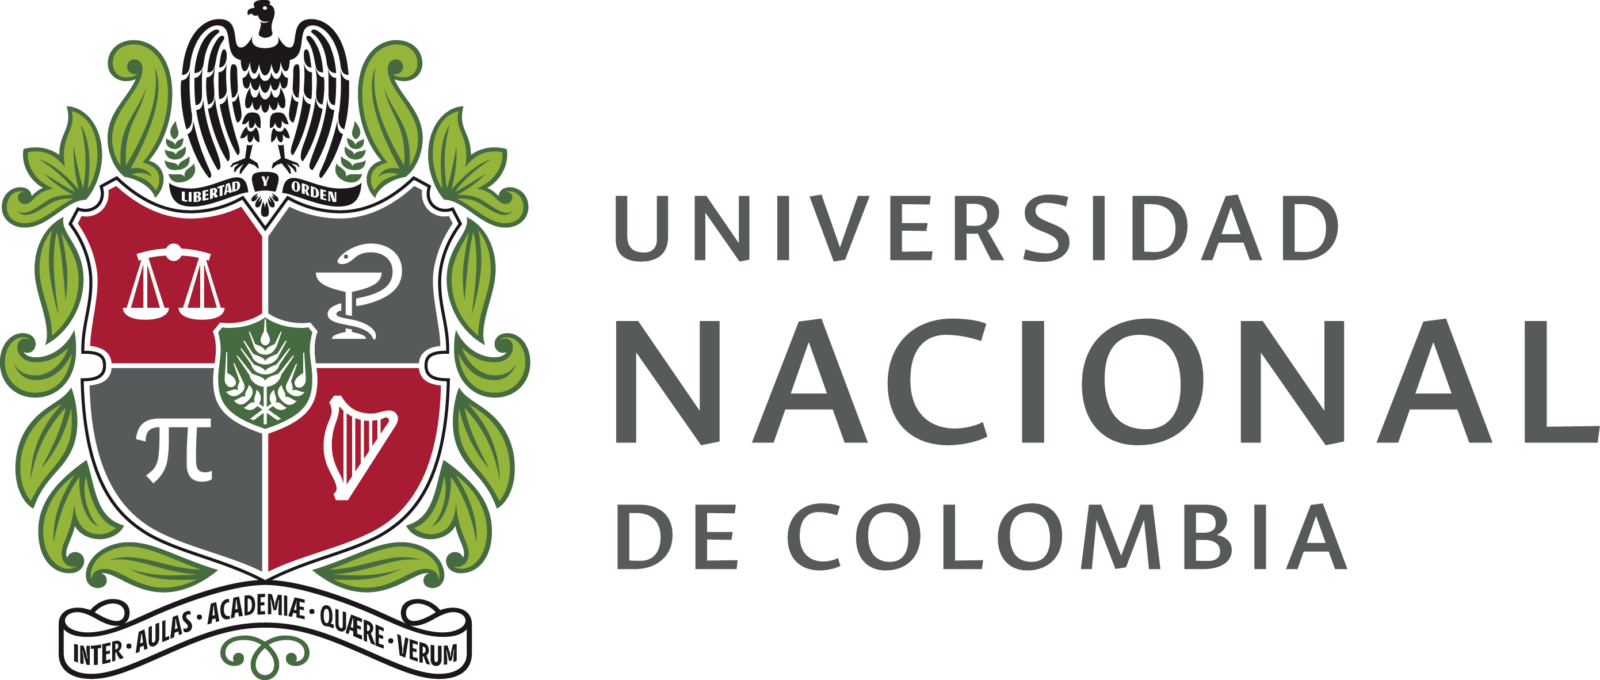 LOGOSIMBOLO-A-COLOR-LATERAL-unal-Colombia-1600x680